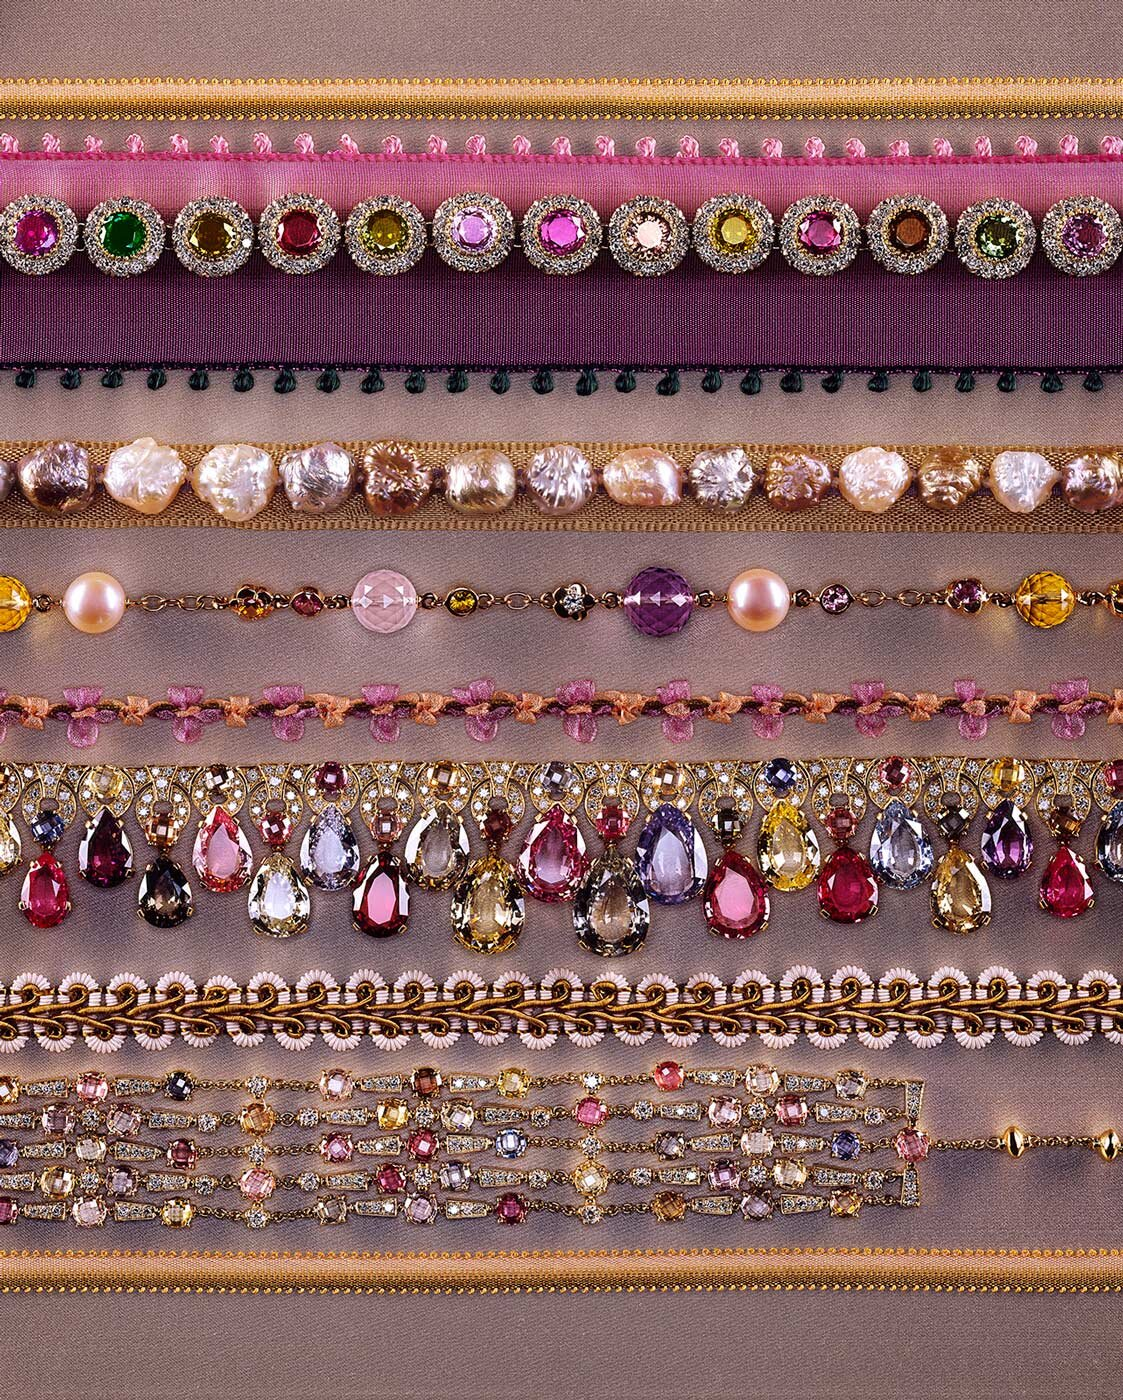 NYT-Jewels-and-Ribbons-1.jpg